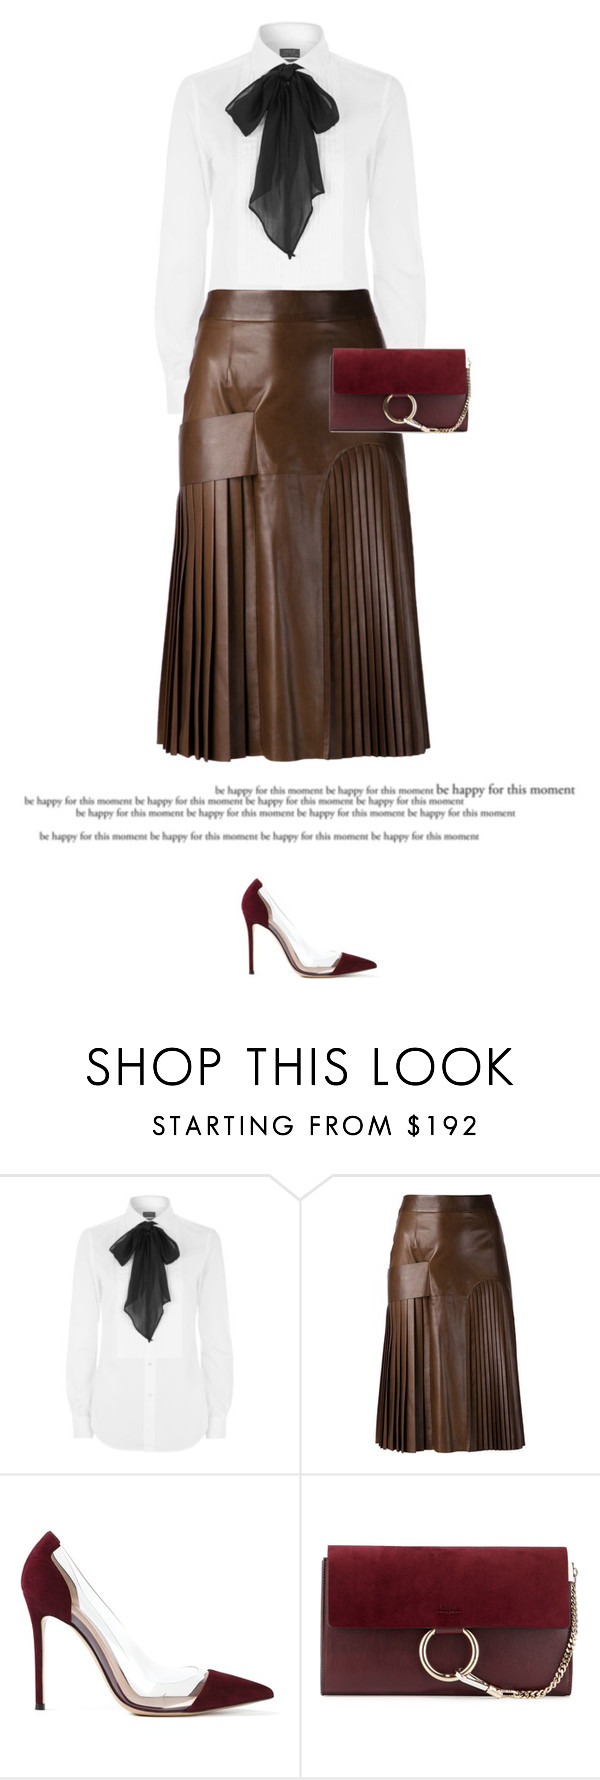 """Brown & Red"" by anja-173 ❤ liked on Polyvore featuring Polo Ralph Lauren, Givenchy, Gianvito Rossi and Chloé"